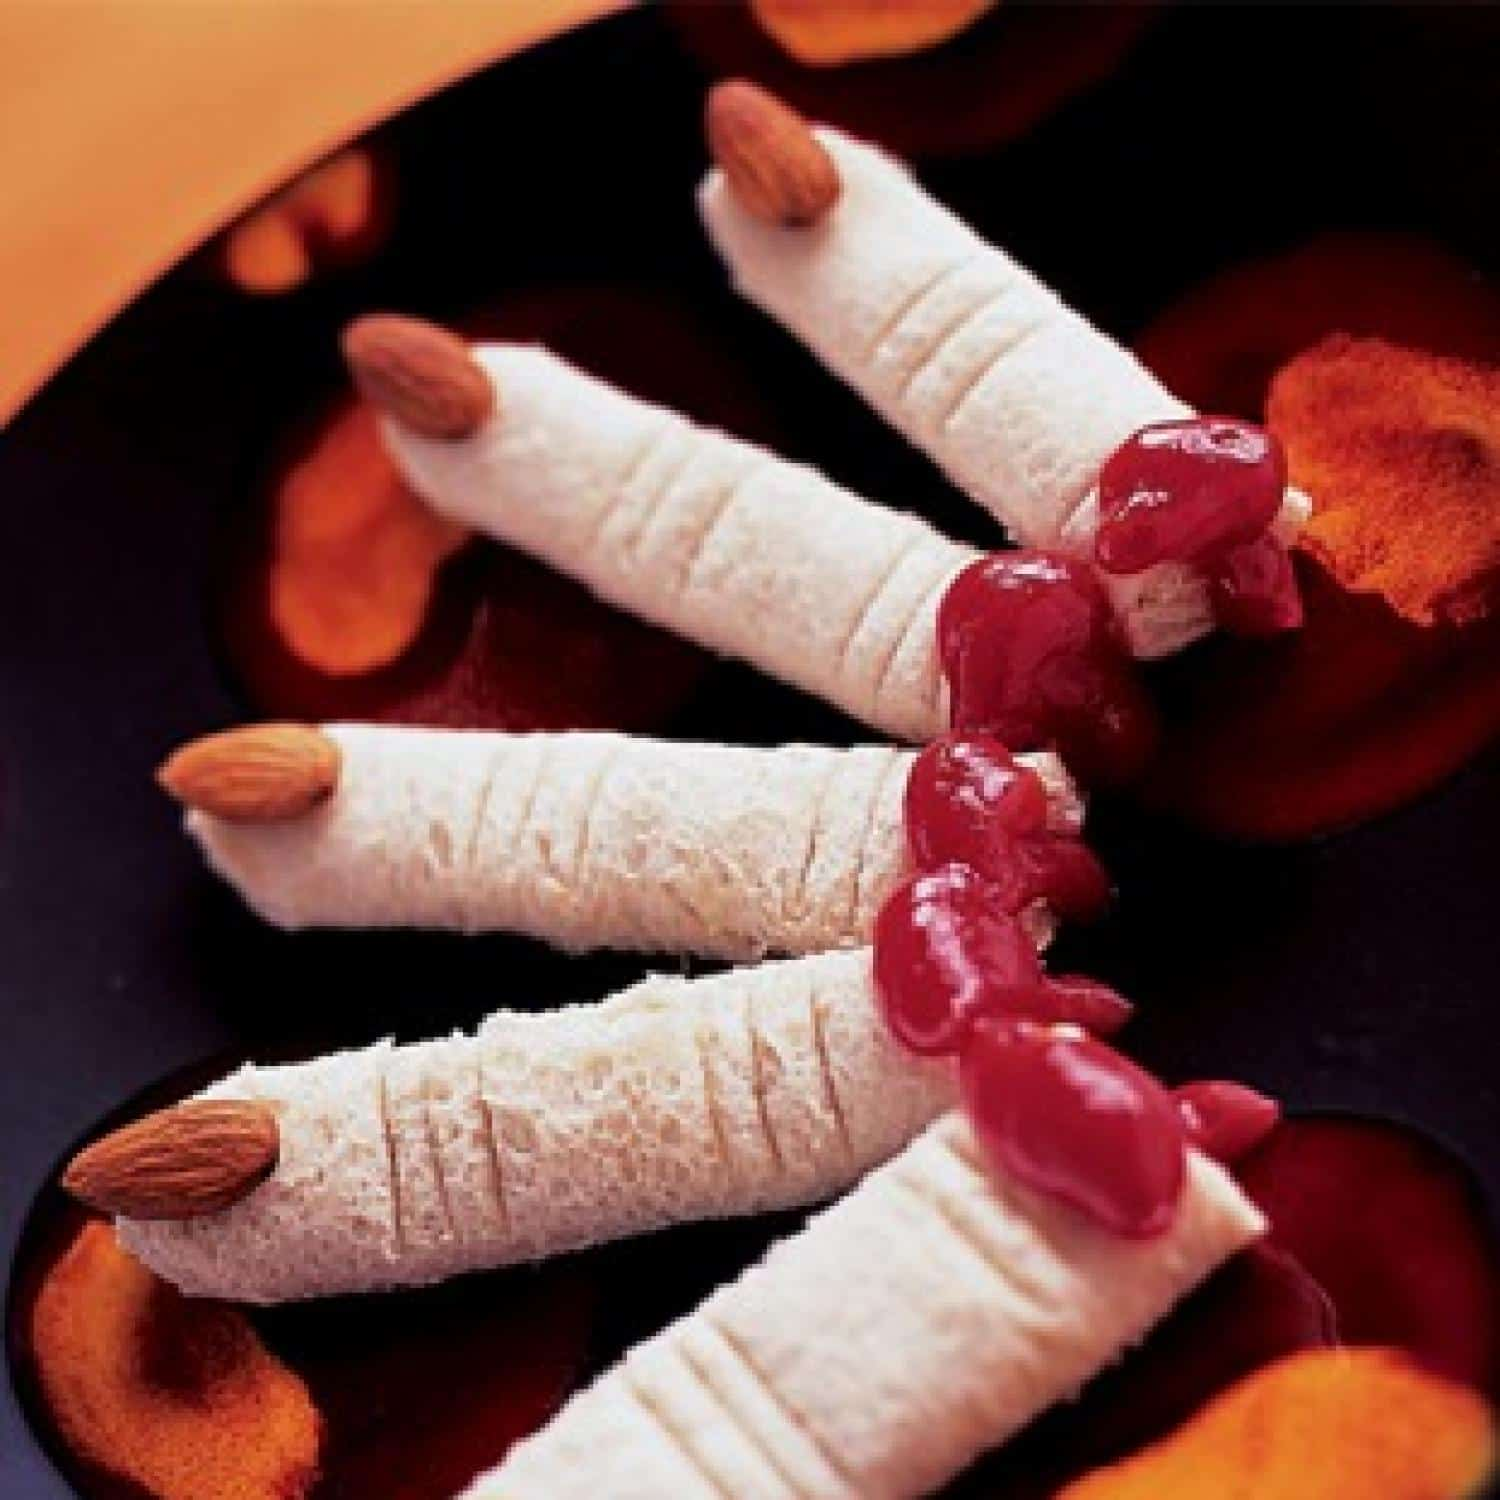 Diy Finger Foods: Amusing Halloween Finger Food Ideas For A Fun-Filled Holiday